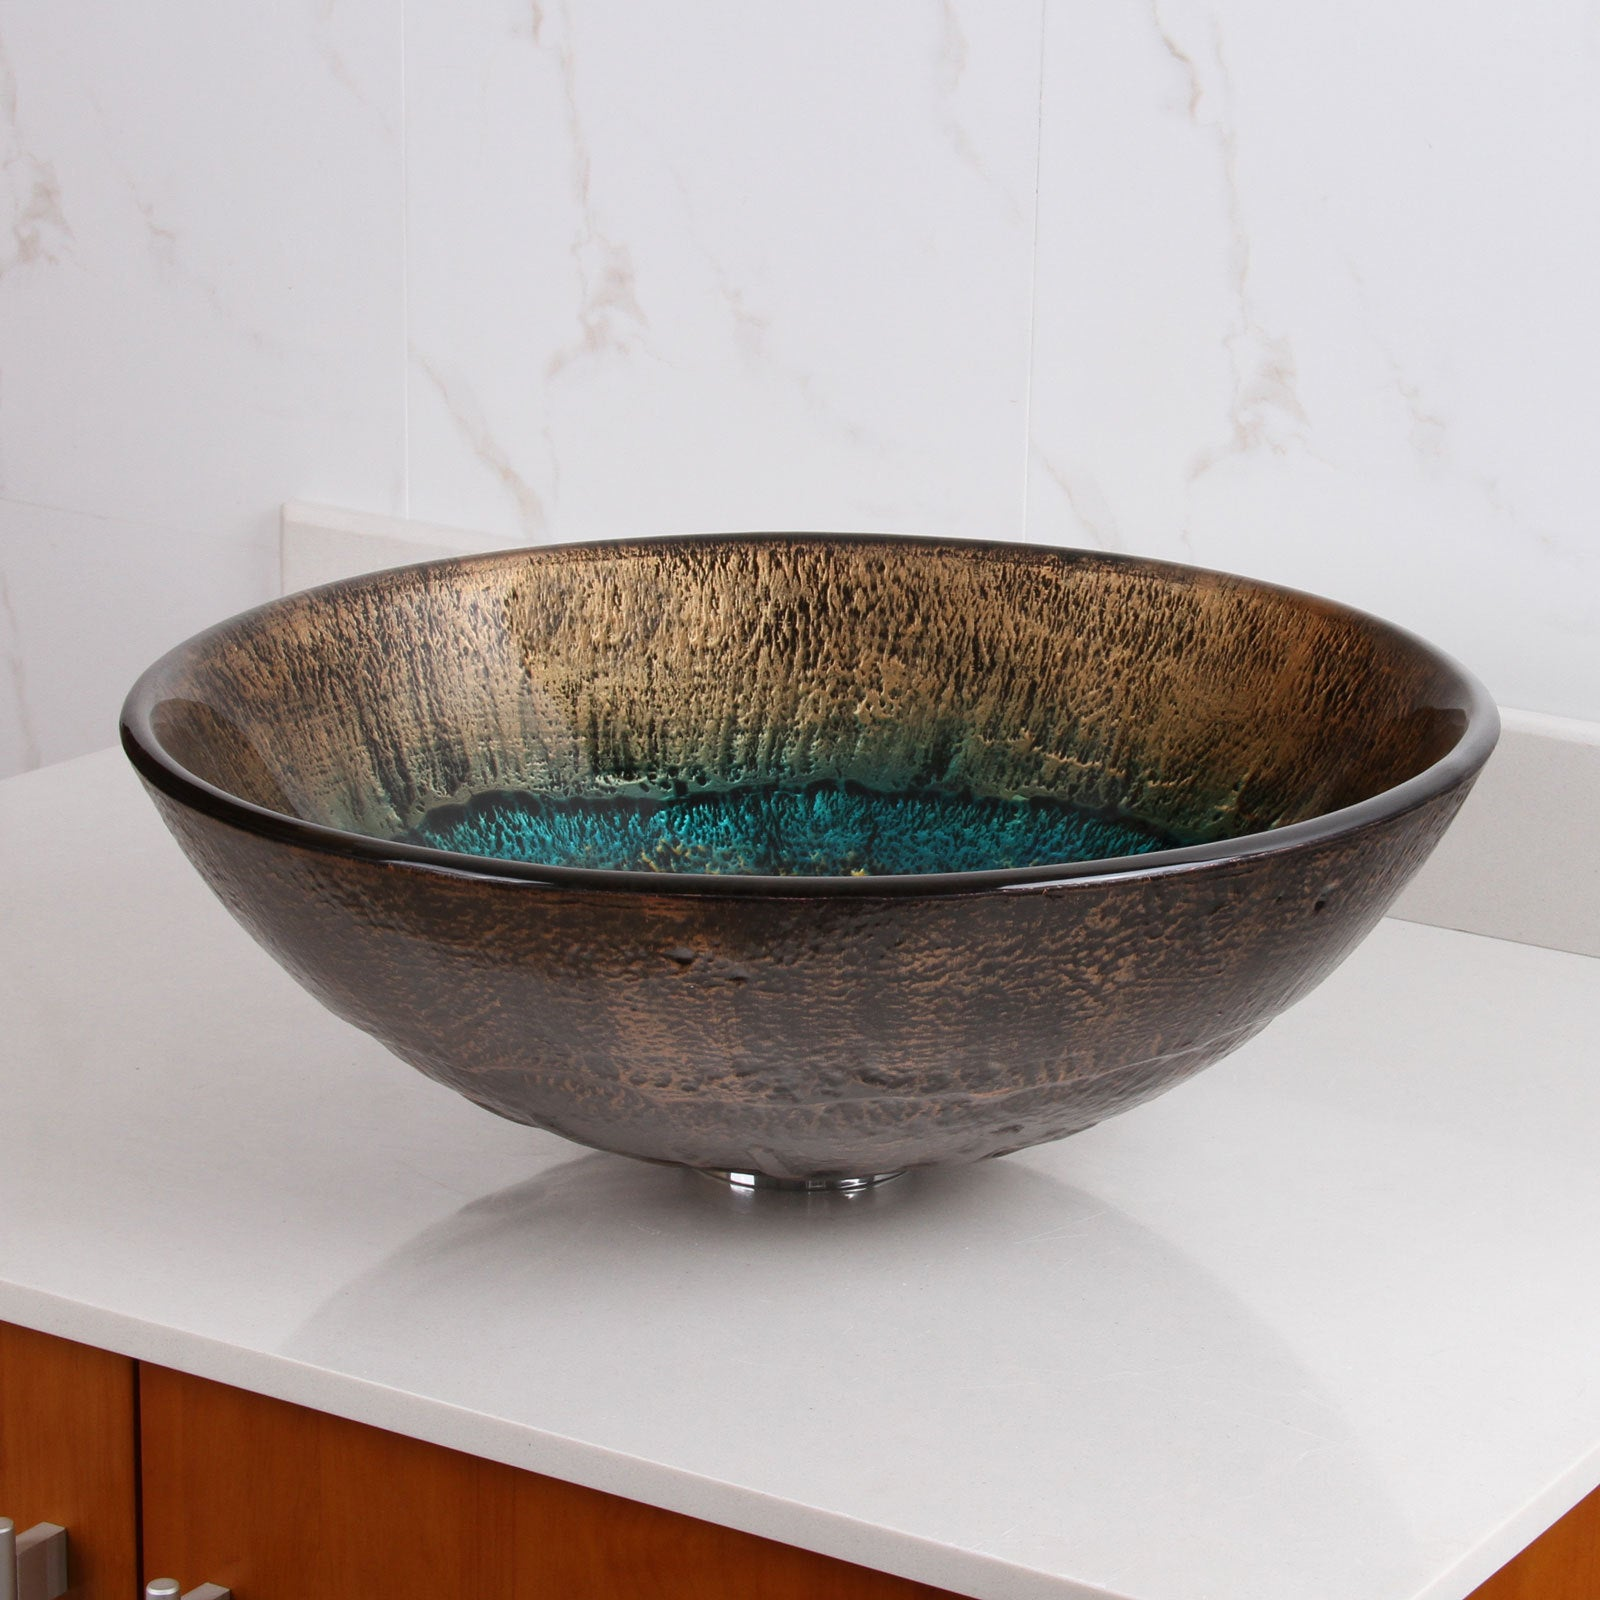 Volcanic Pattern Tempered Glass Bathroom Vessel Sink and Waterfall ...